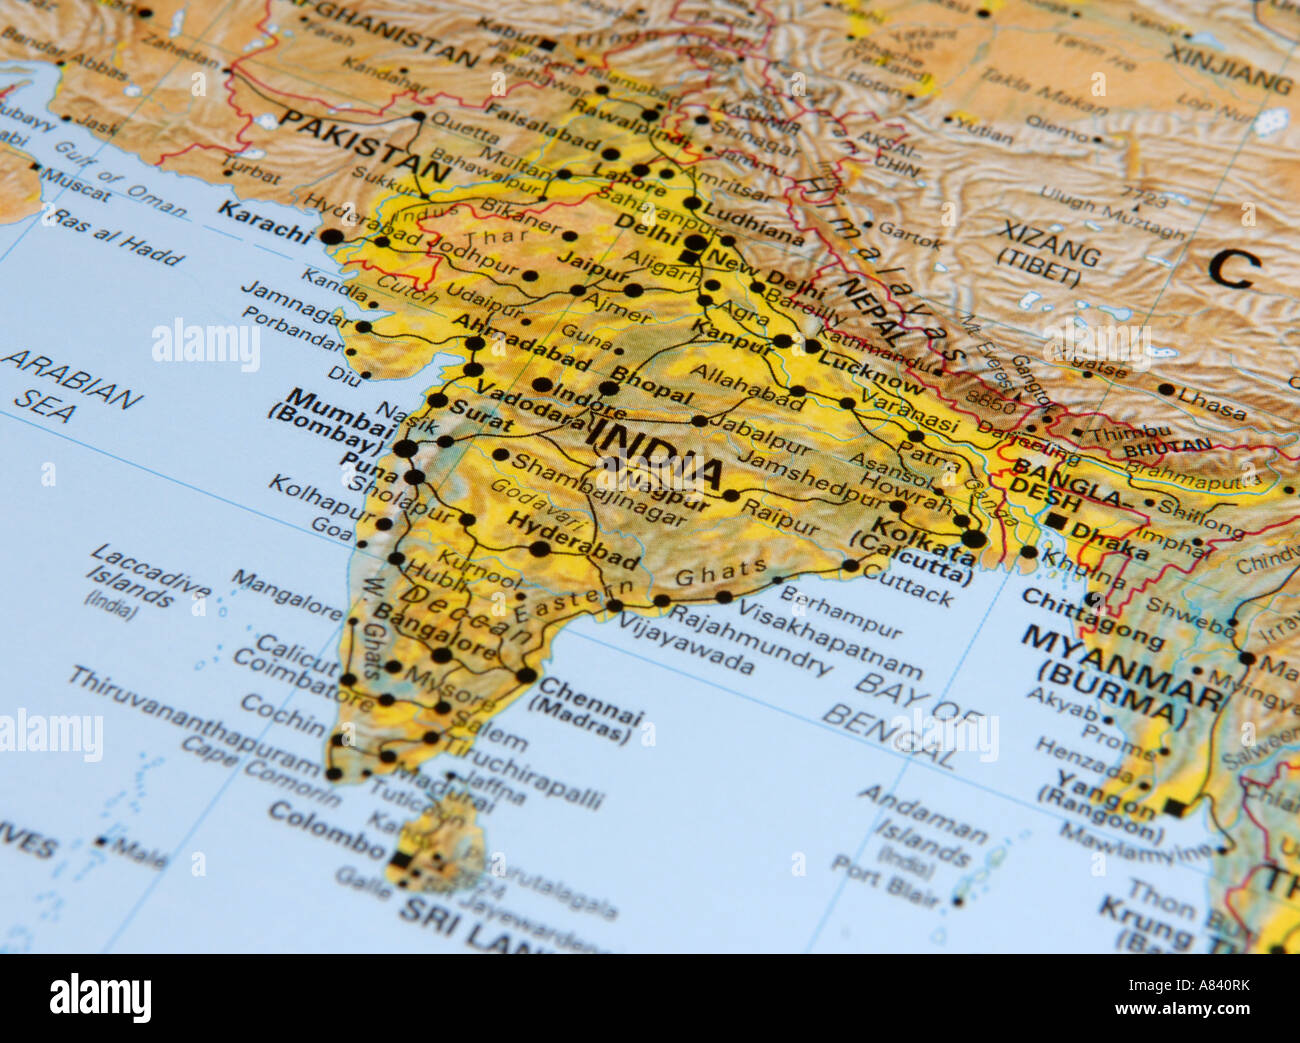 India Country Map Stock Photos & India Country Map Stock Images - Alamy